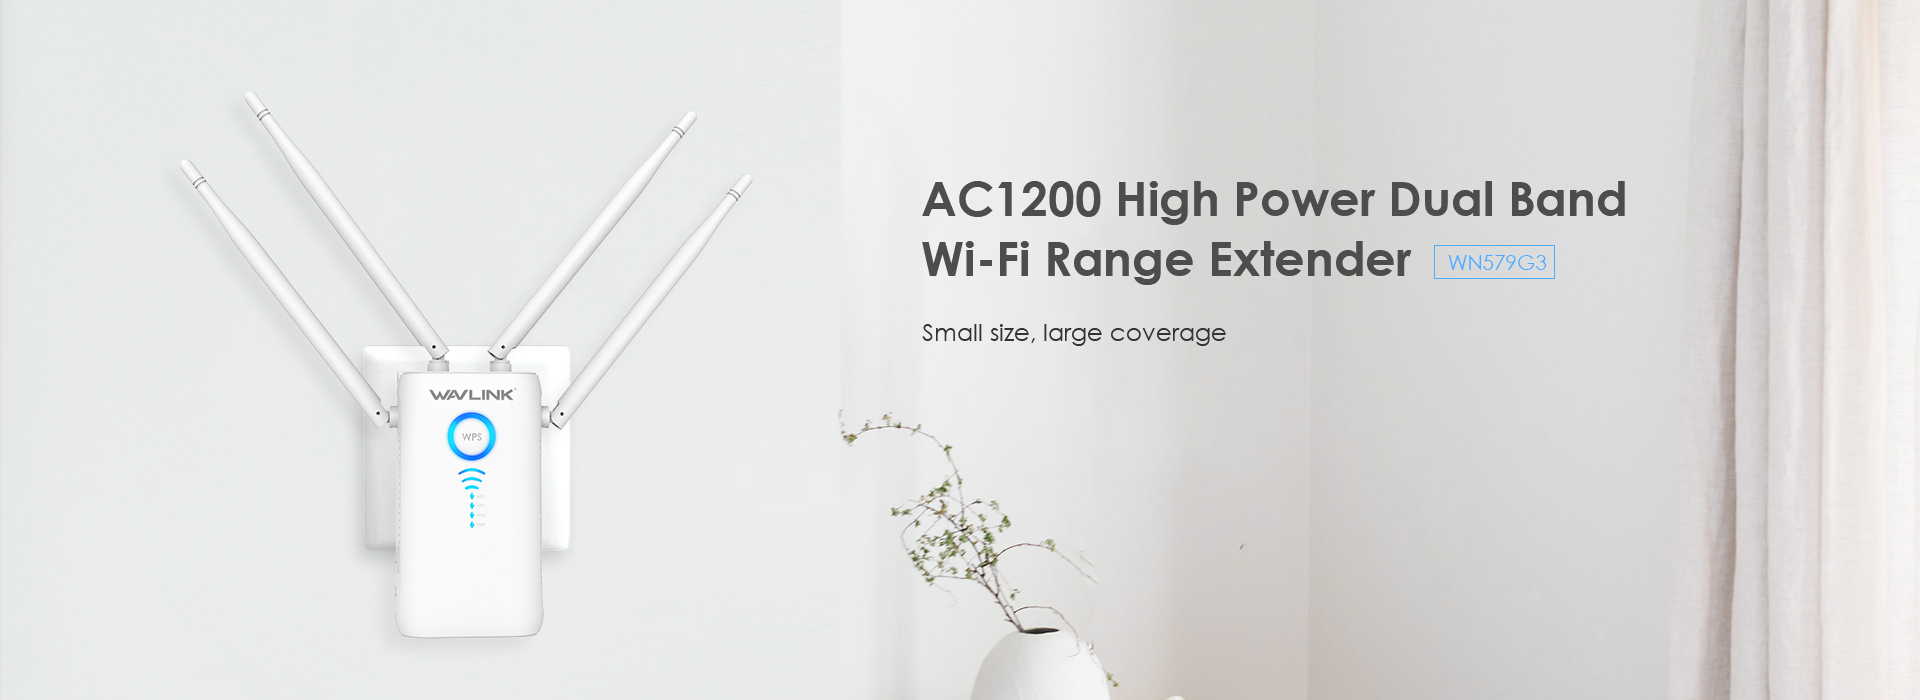 AERIAL AC1200 Dual-band Wireless  AP/Range Extender/Router with Dual Giga  LAN and High Power Antennas